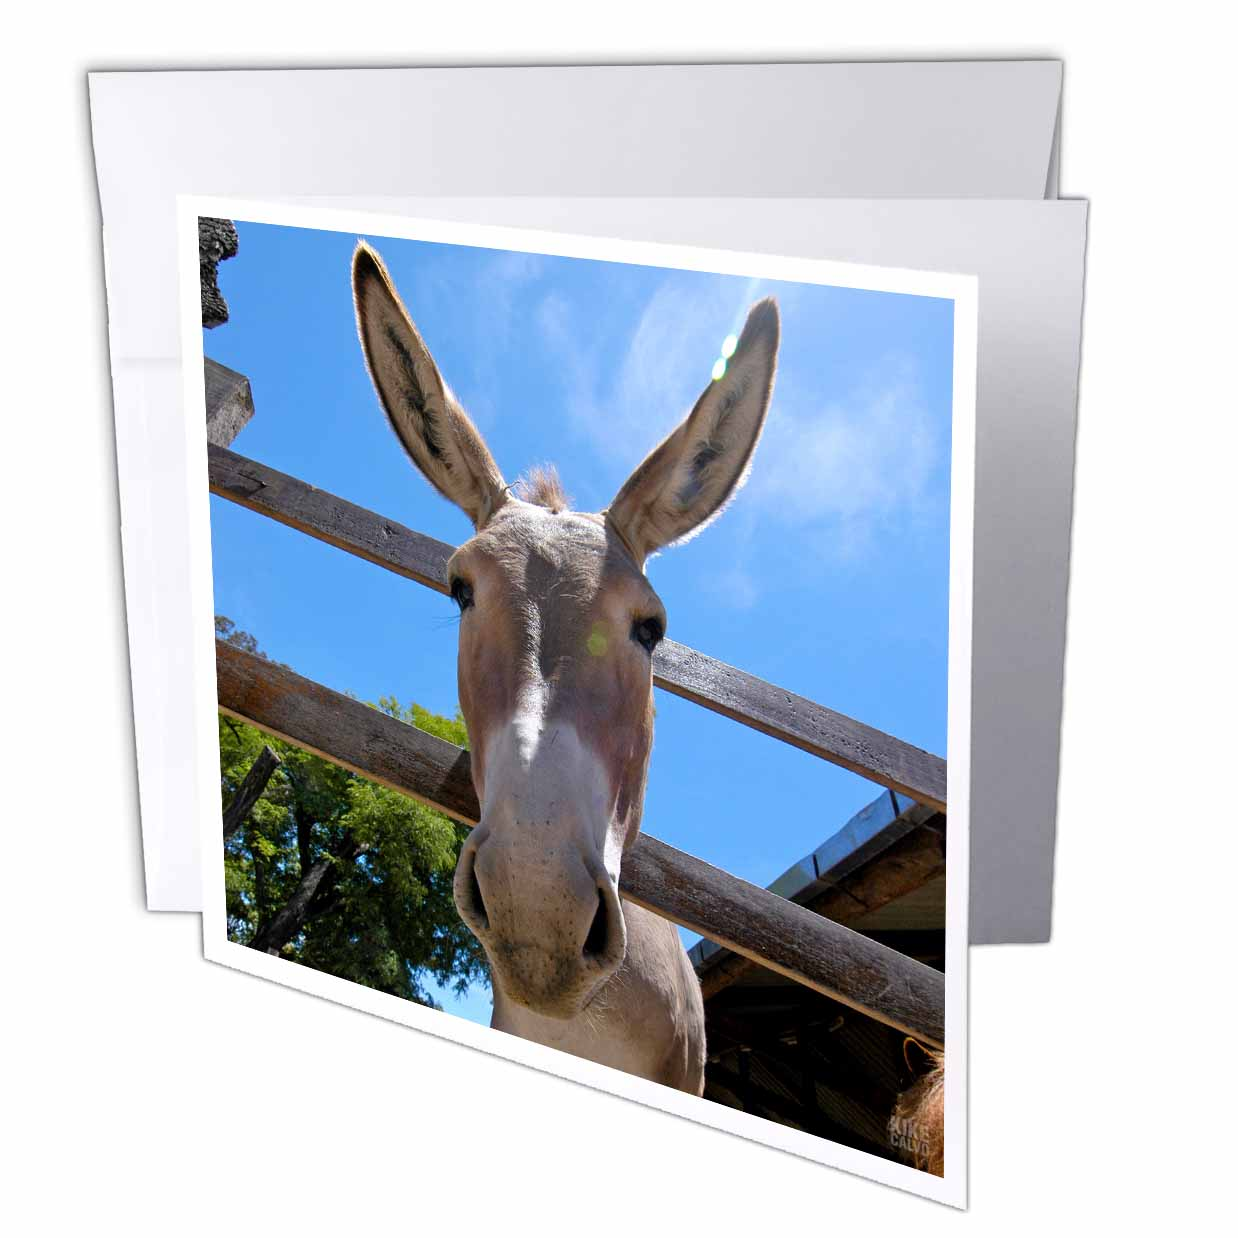 3dRose Donkey in a farm 2, Greeting Cards, 6 x 6 inches, set of 6